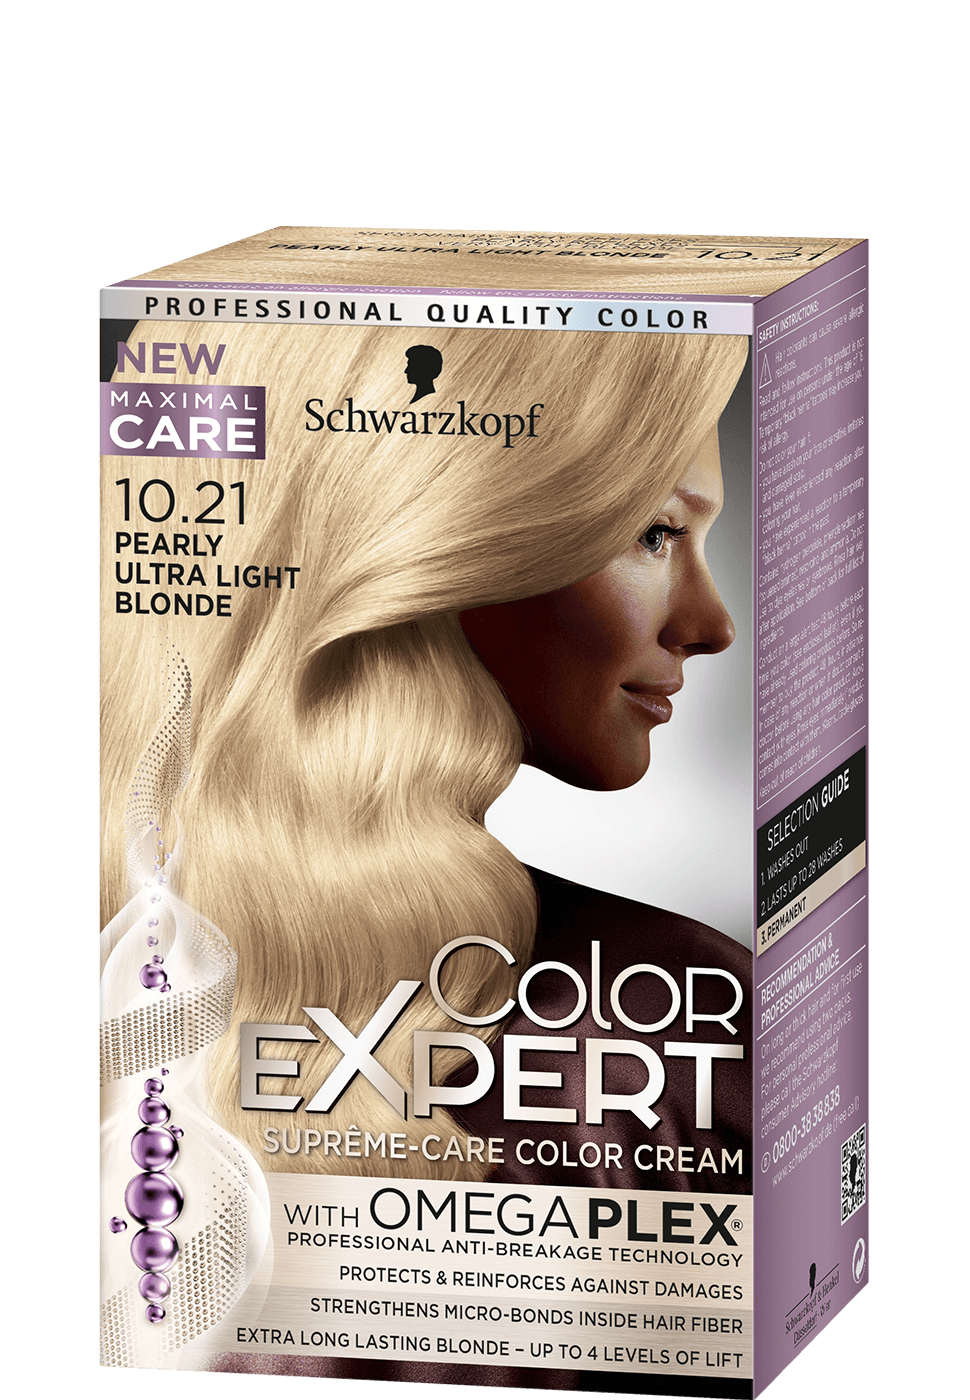 Color Expert Color Creme 10-21 Pearly Ultra Light Blonde